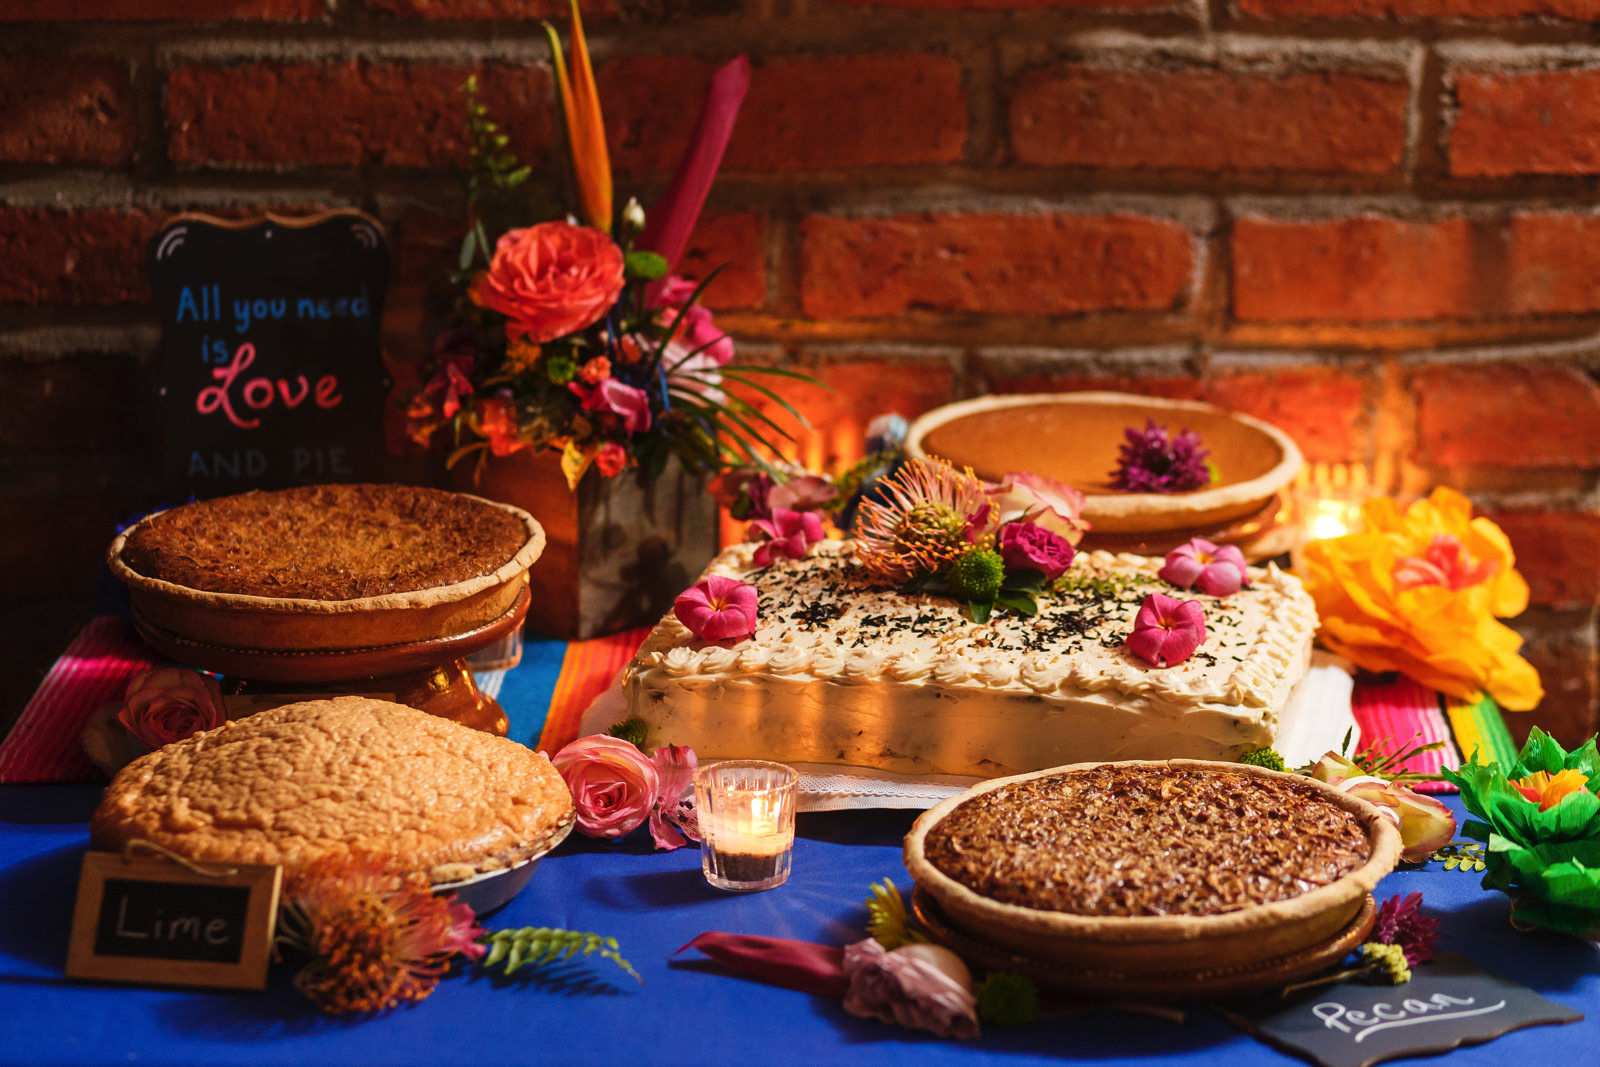 The collection of all of the famous pies from Yelapa, next to the wedding cake.